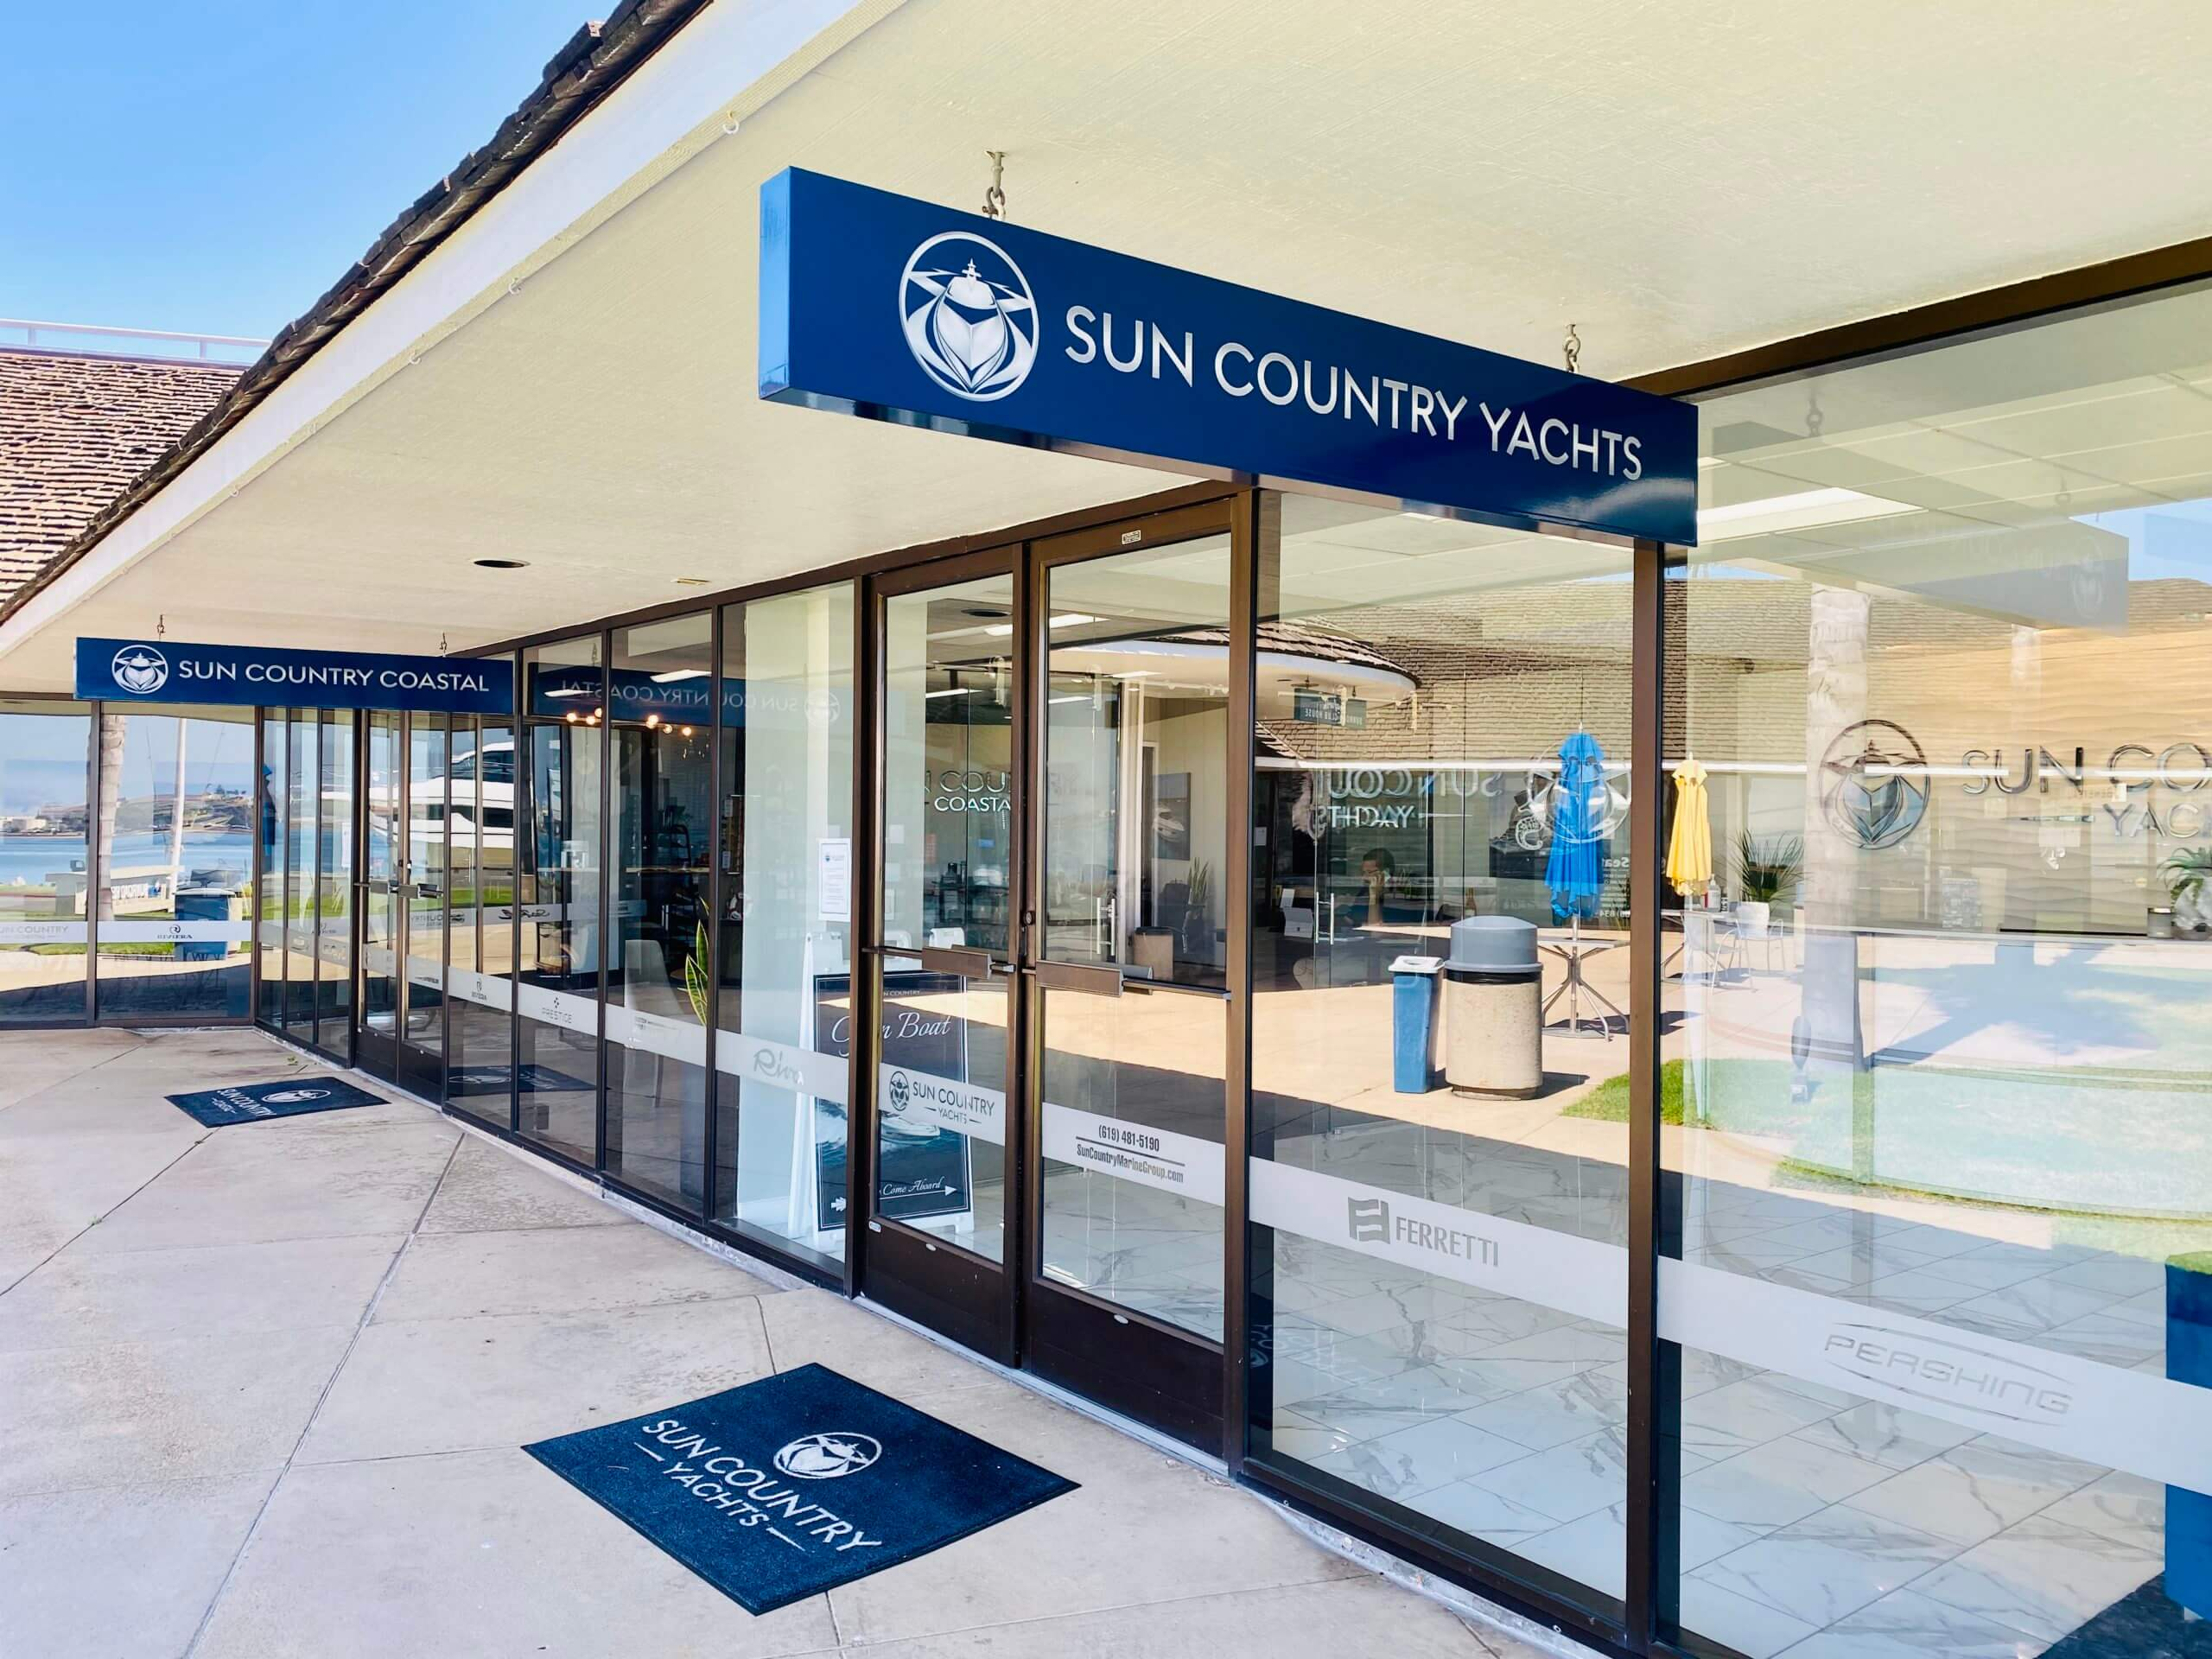 sun_country_yachts-san_diego-storefront